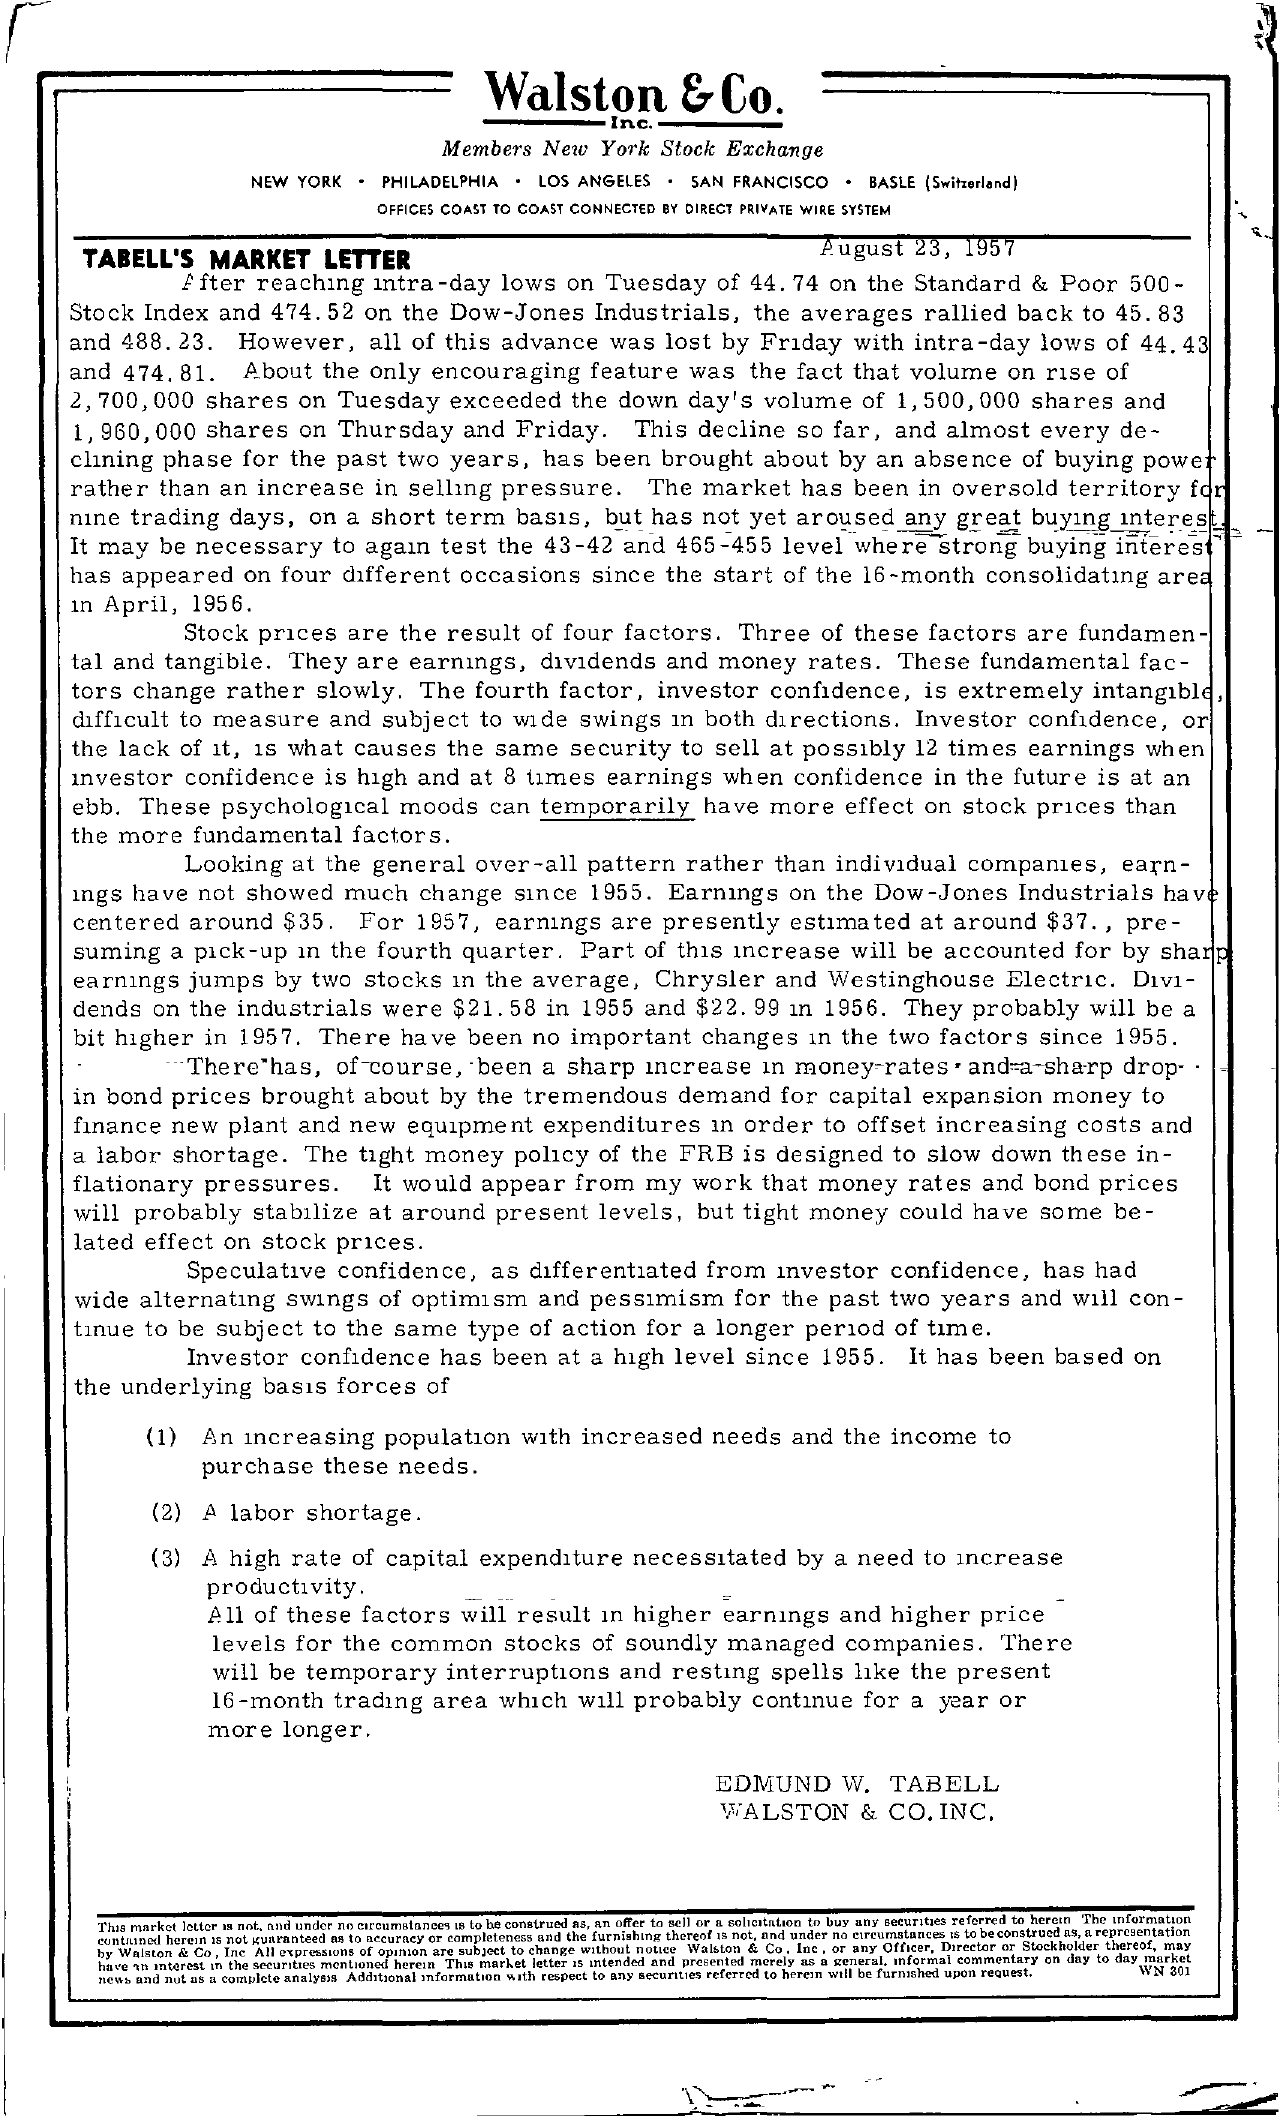 Tabell's Market Letter - August 23, 1957